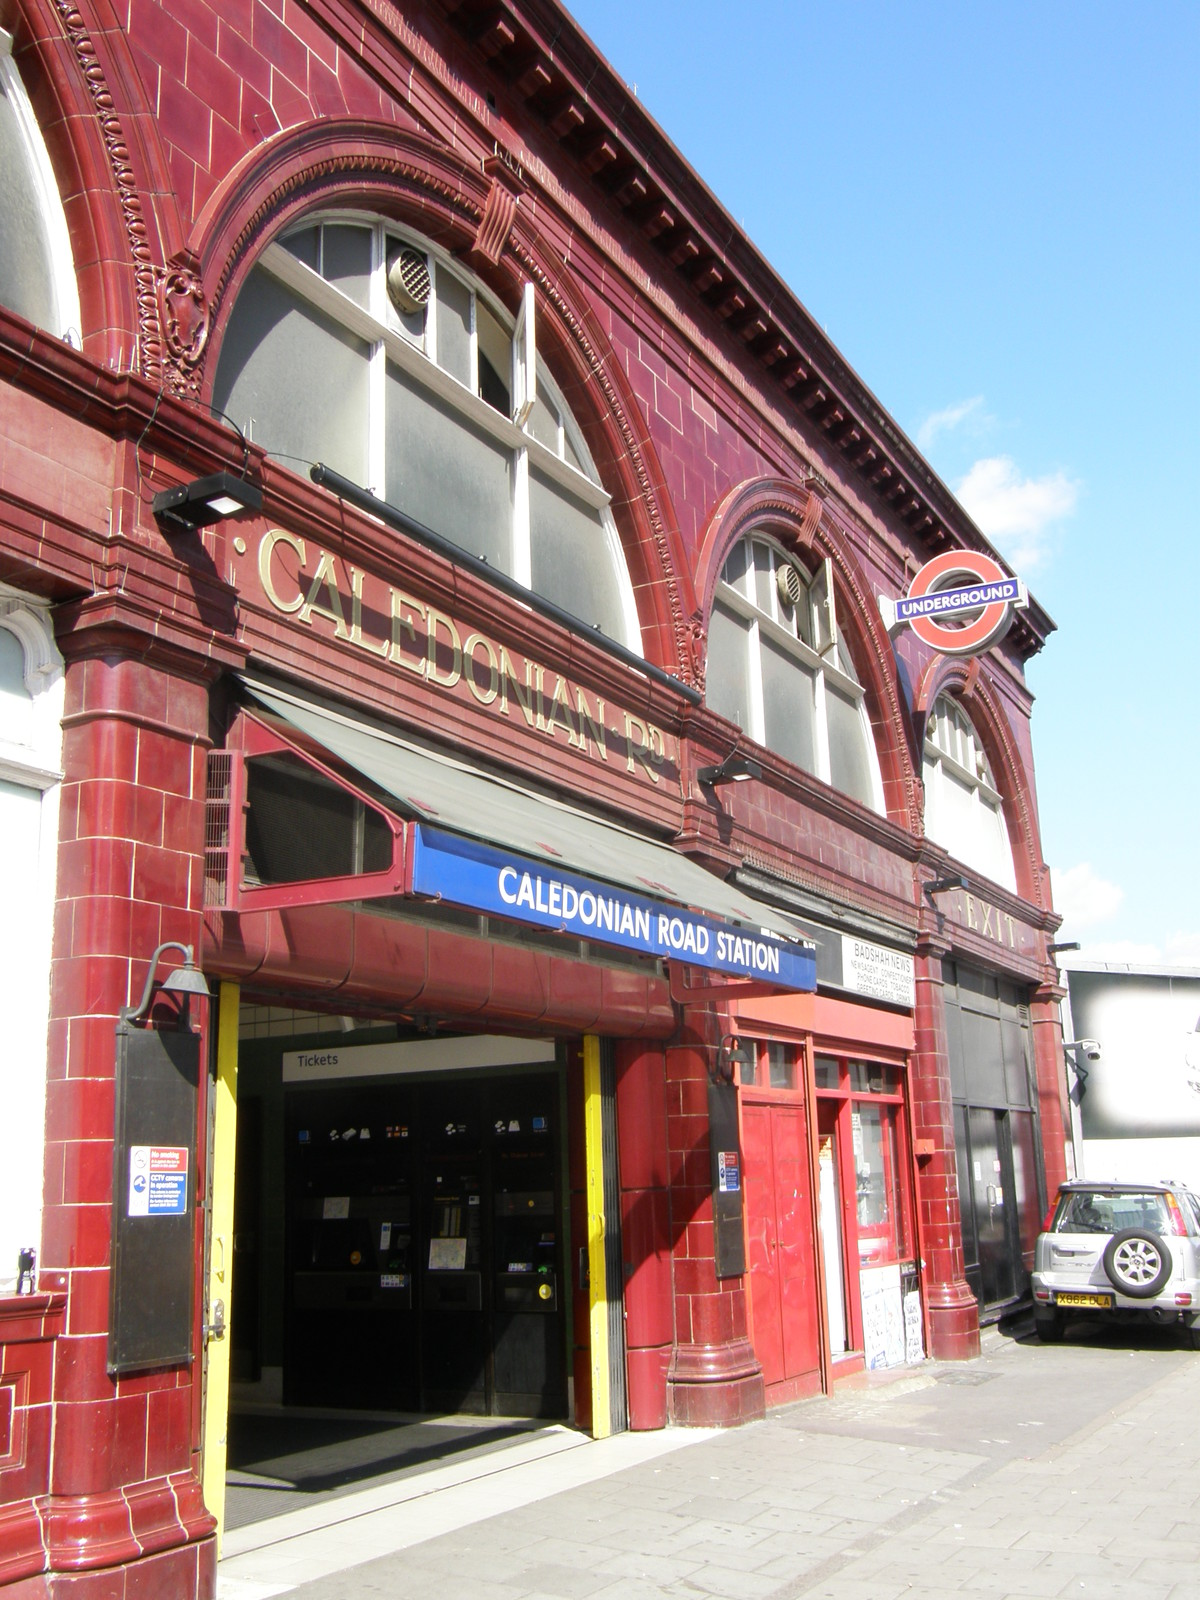 Caledonian Road station